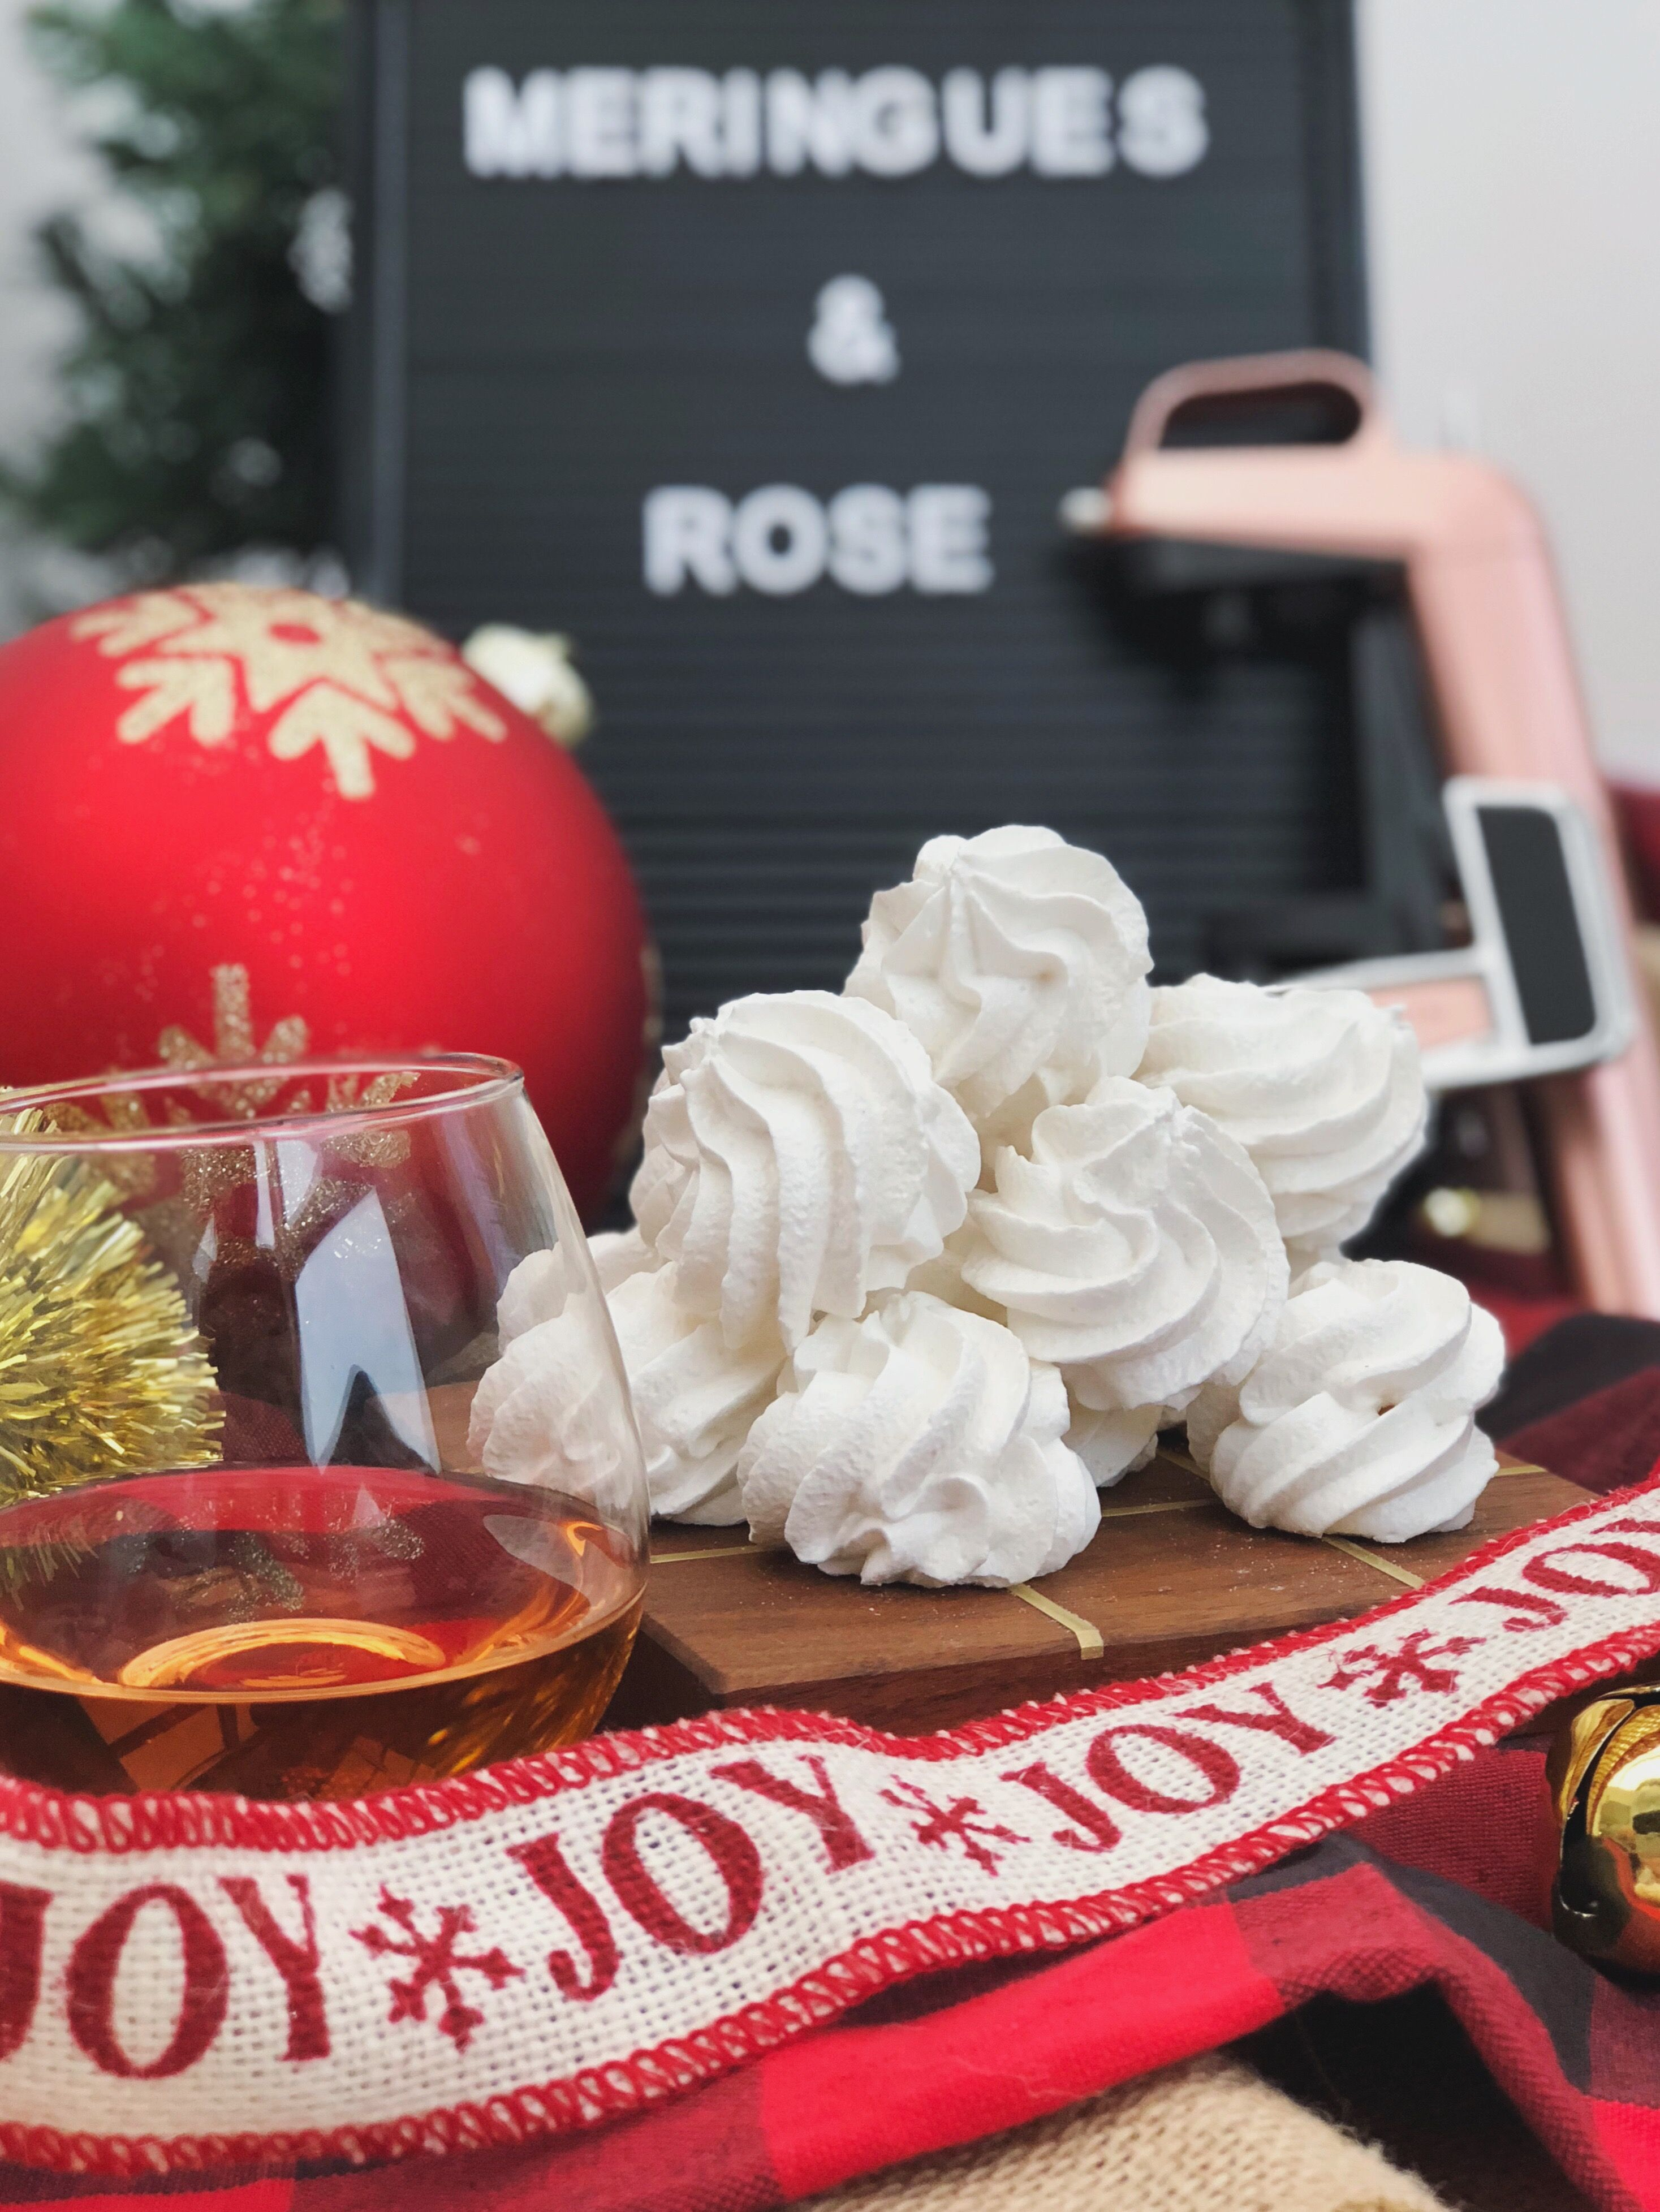 What Better Way To Kick Off The Holidays Than With Our Festively Curated Twelve Days Of Coravin Christmas Pairings On The First Holiday Meringue Cookies Day